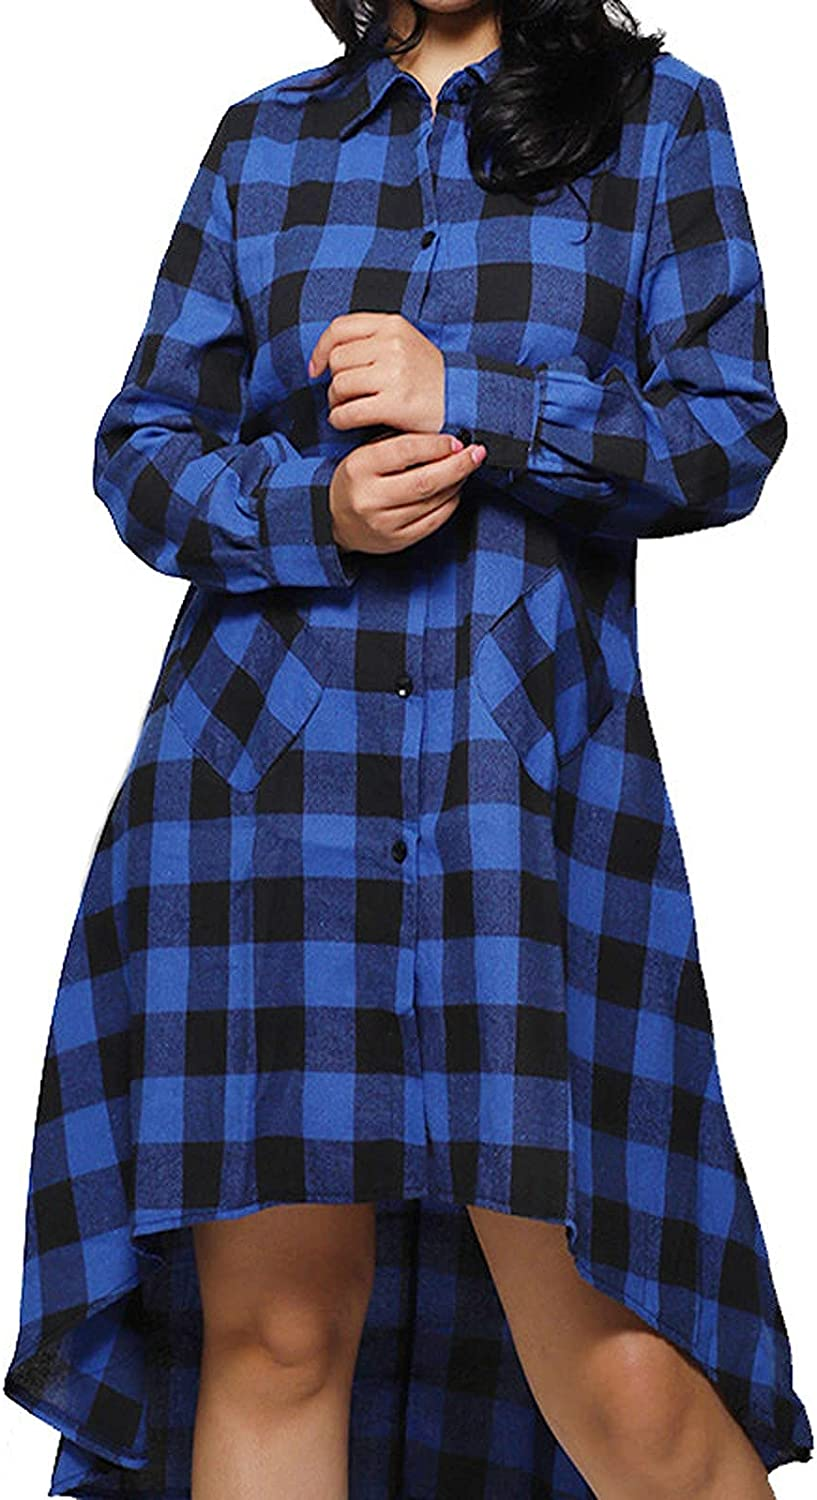 VonVonCo Pullover Sweaters for Women Plaid Checked Cardigan Oversized T-Shirt Ladies Long Sleeve Casual Tops Blouse Coat